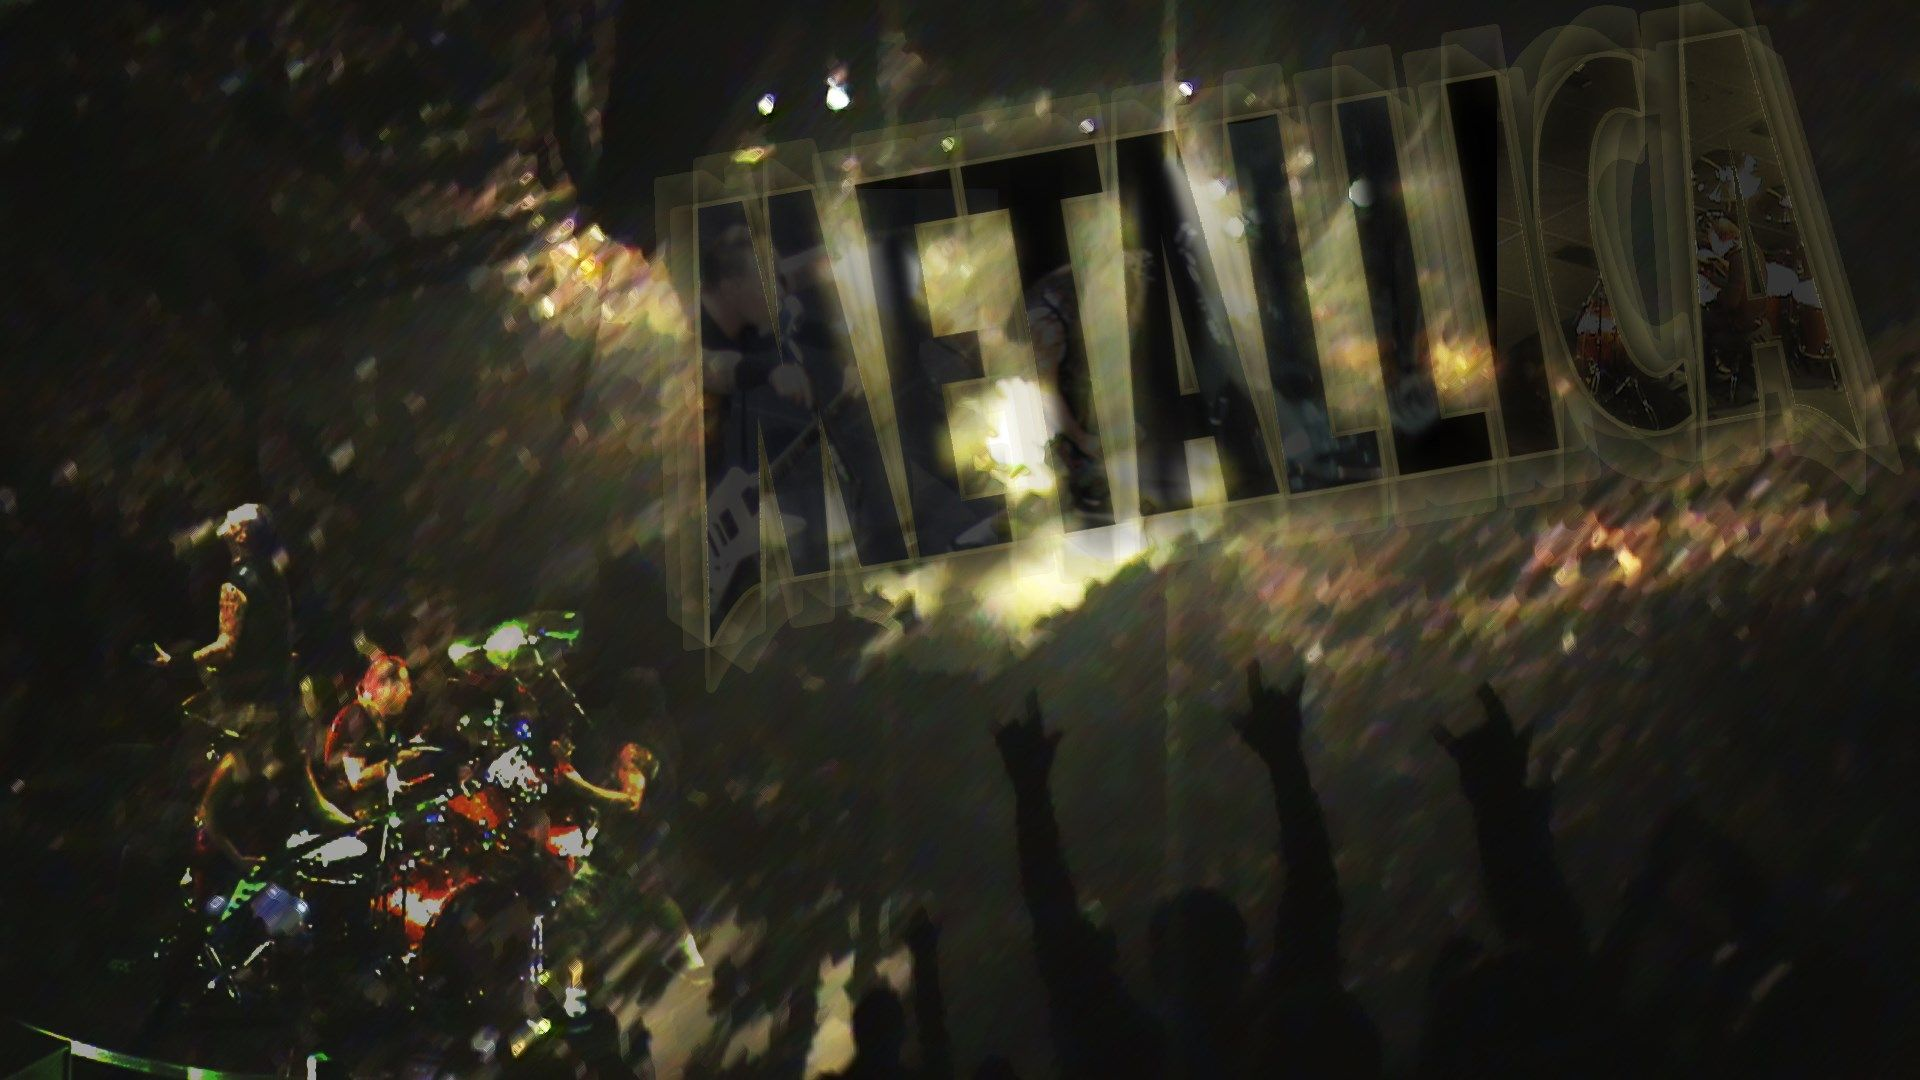 widescreen metal band metallica logo wallpaper hd picture